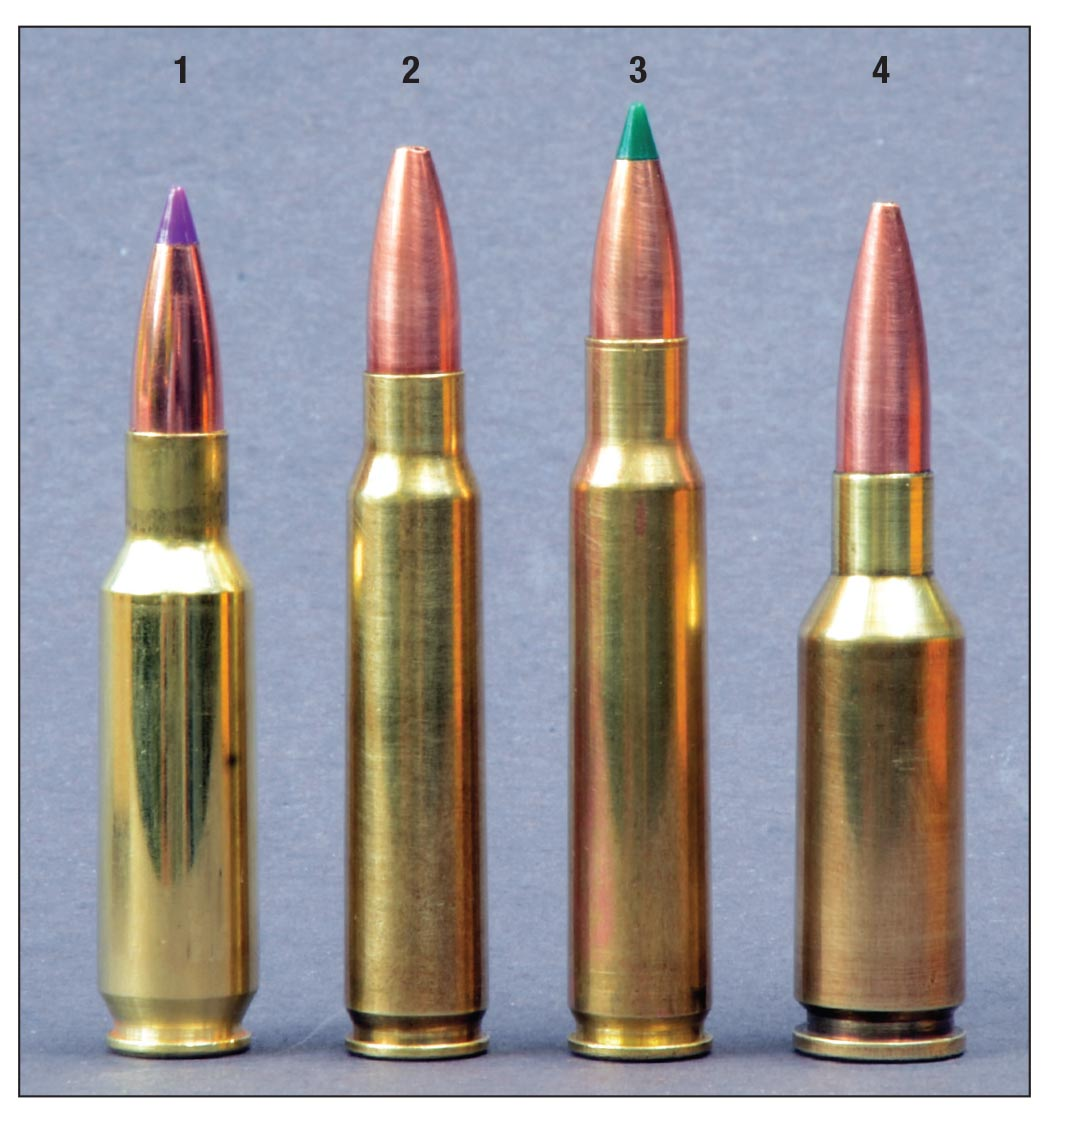 The .24 Nosler is shown here with other 6mm cartridges comparable in performance: (1) .24 Nosler, (2) 6x45mm (.223 Remington case), (3) 6x47mm (.222 Remington Magnum case) and the (4) 6mm PPC.